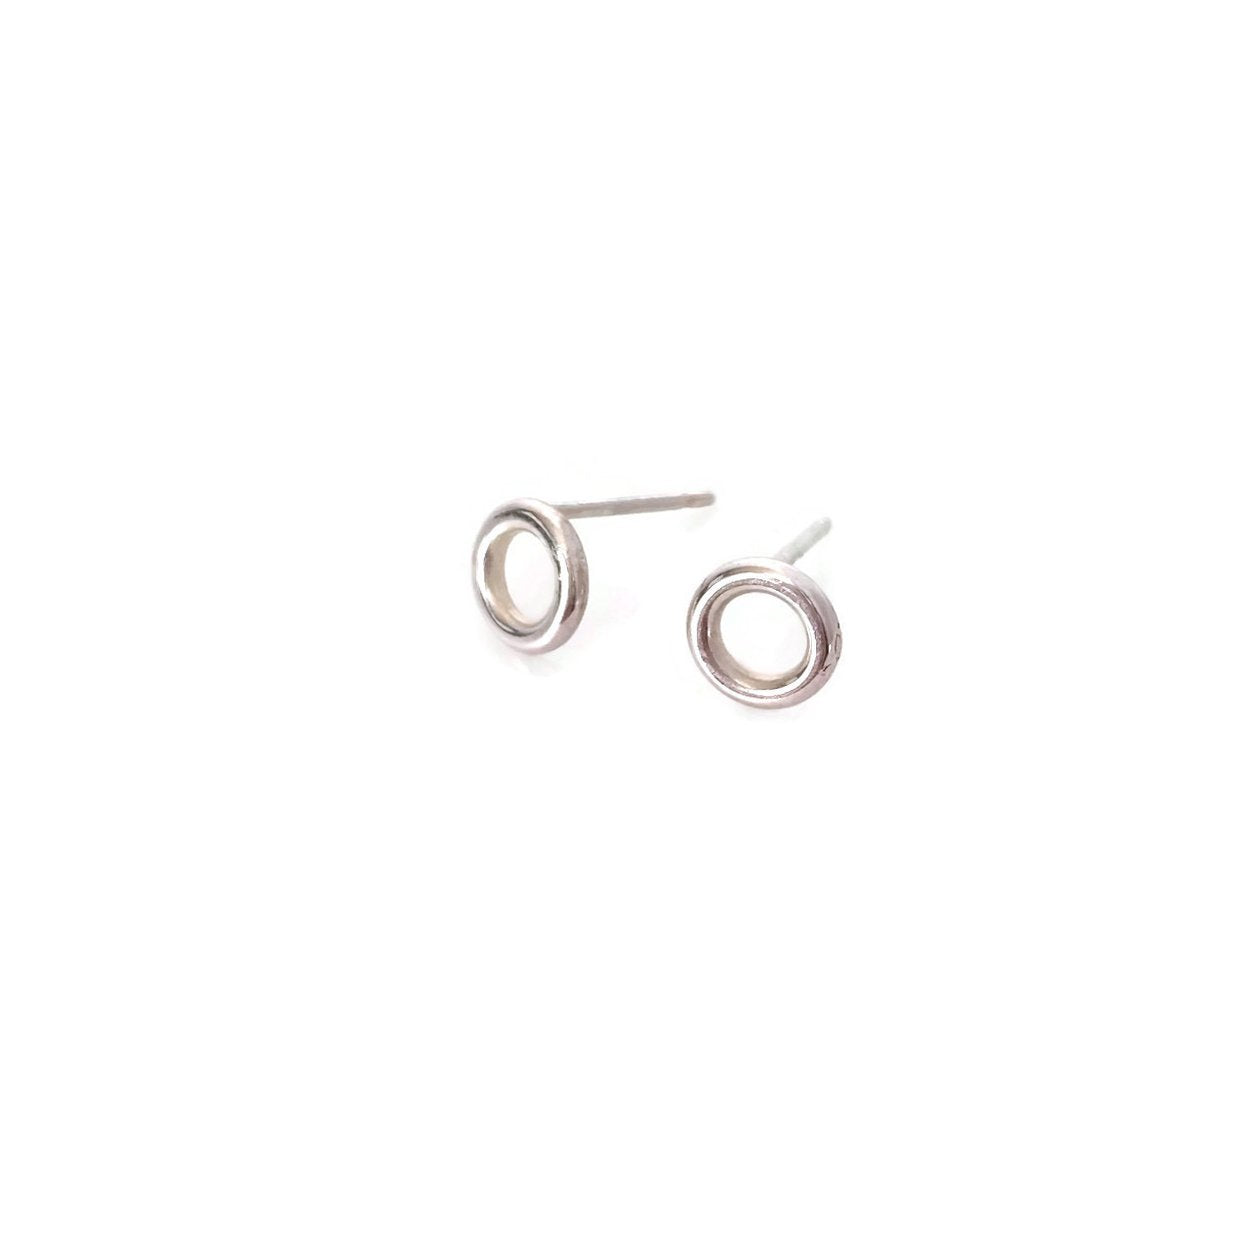 This sterling silver circle stud earrings are great for people who love minimal style.